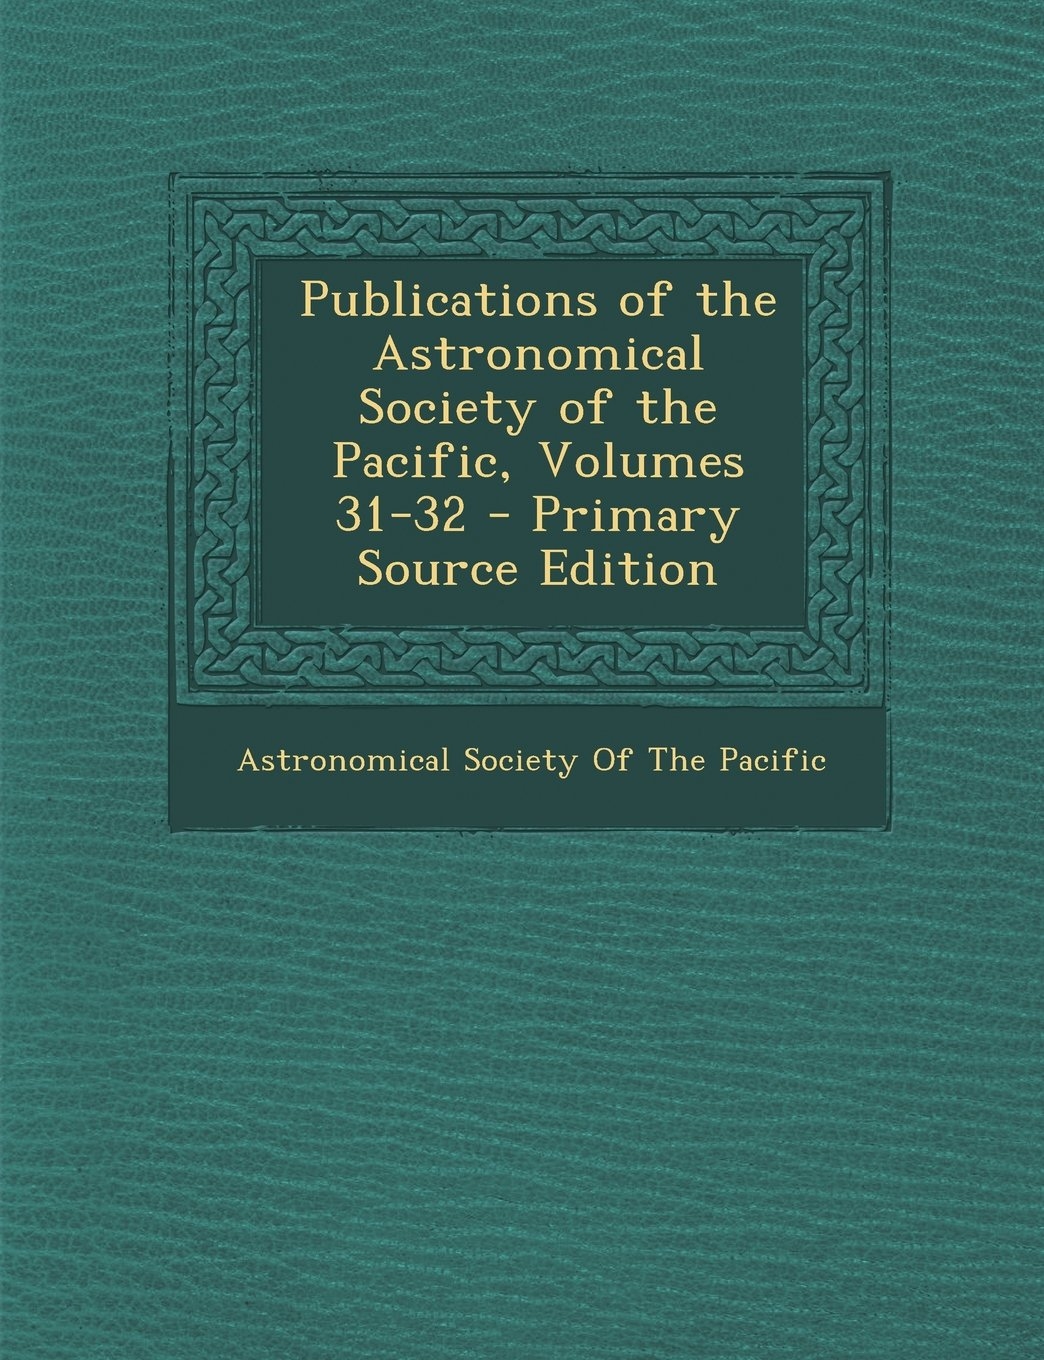 Publications of the Astronomical Society of the Pacific, Volumes 31-32 - Primary Source Edition PDF